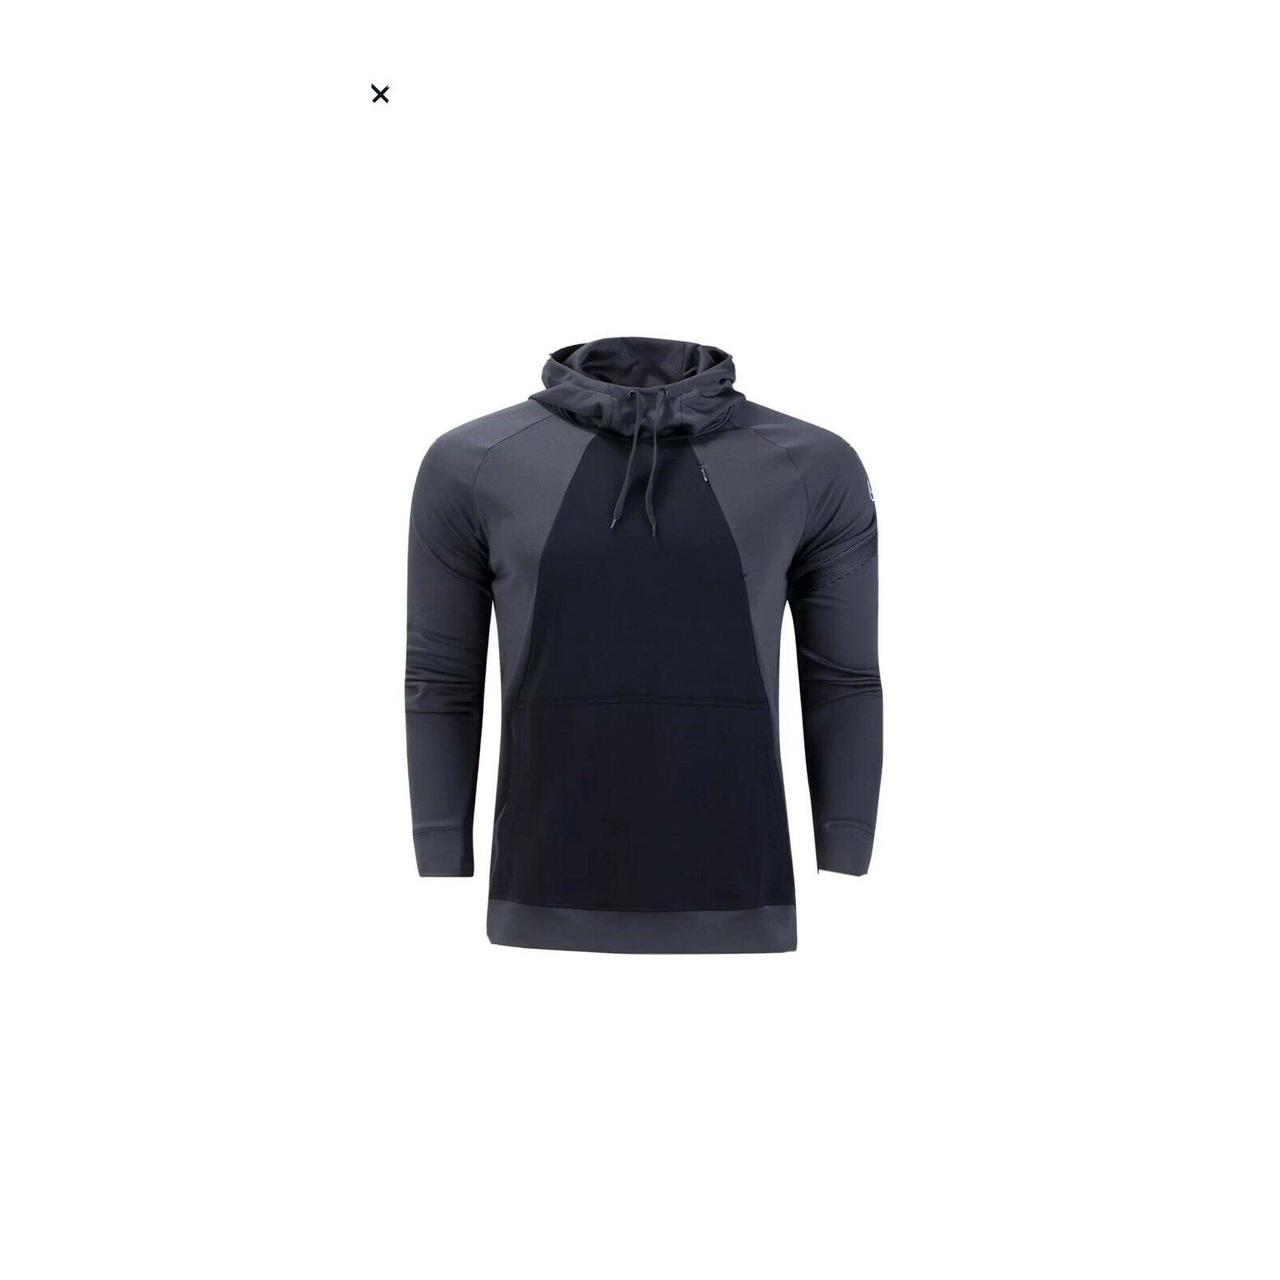 Product Image 1 - Nike Academy 20 Pullover Soccer